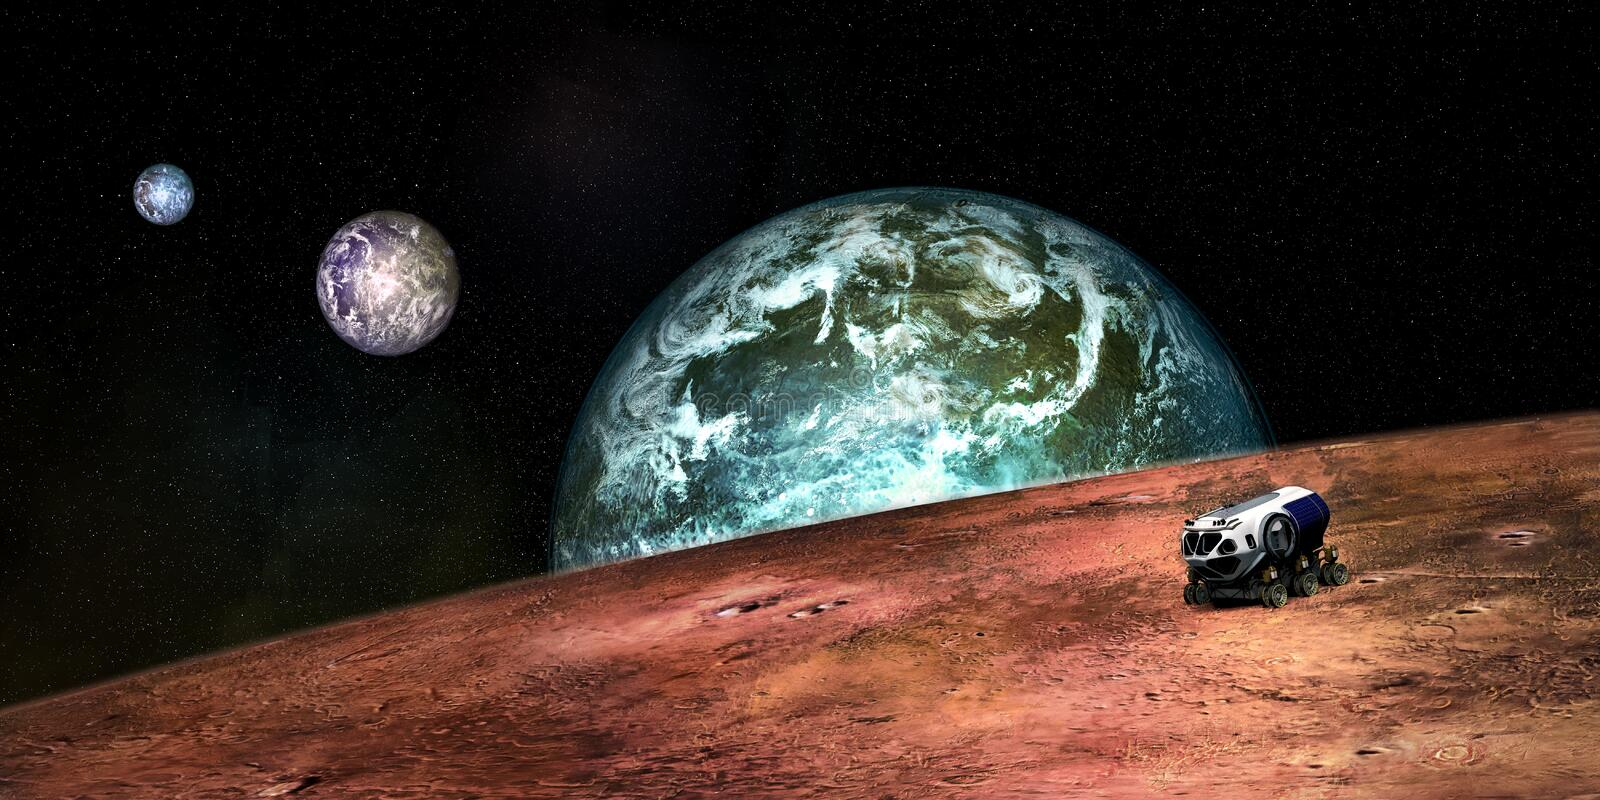 Extremely detailed and realistic high resolution 3D image of a an Exoplanet with a Space Exploration Vehicle. Shot from outer spac stock photography